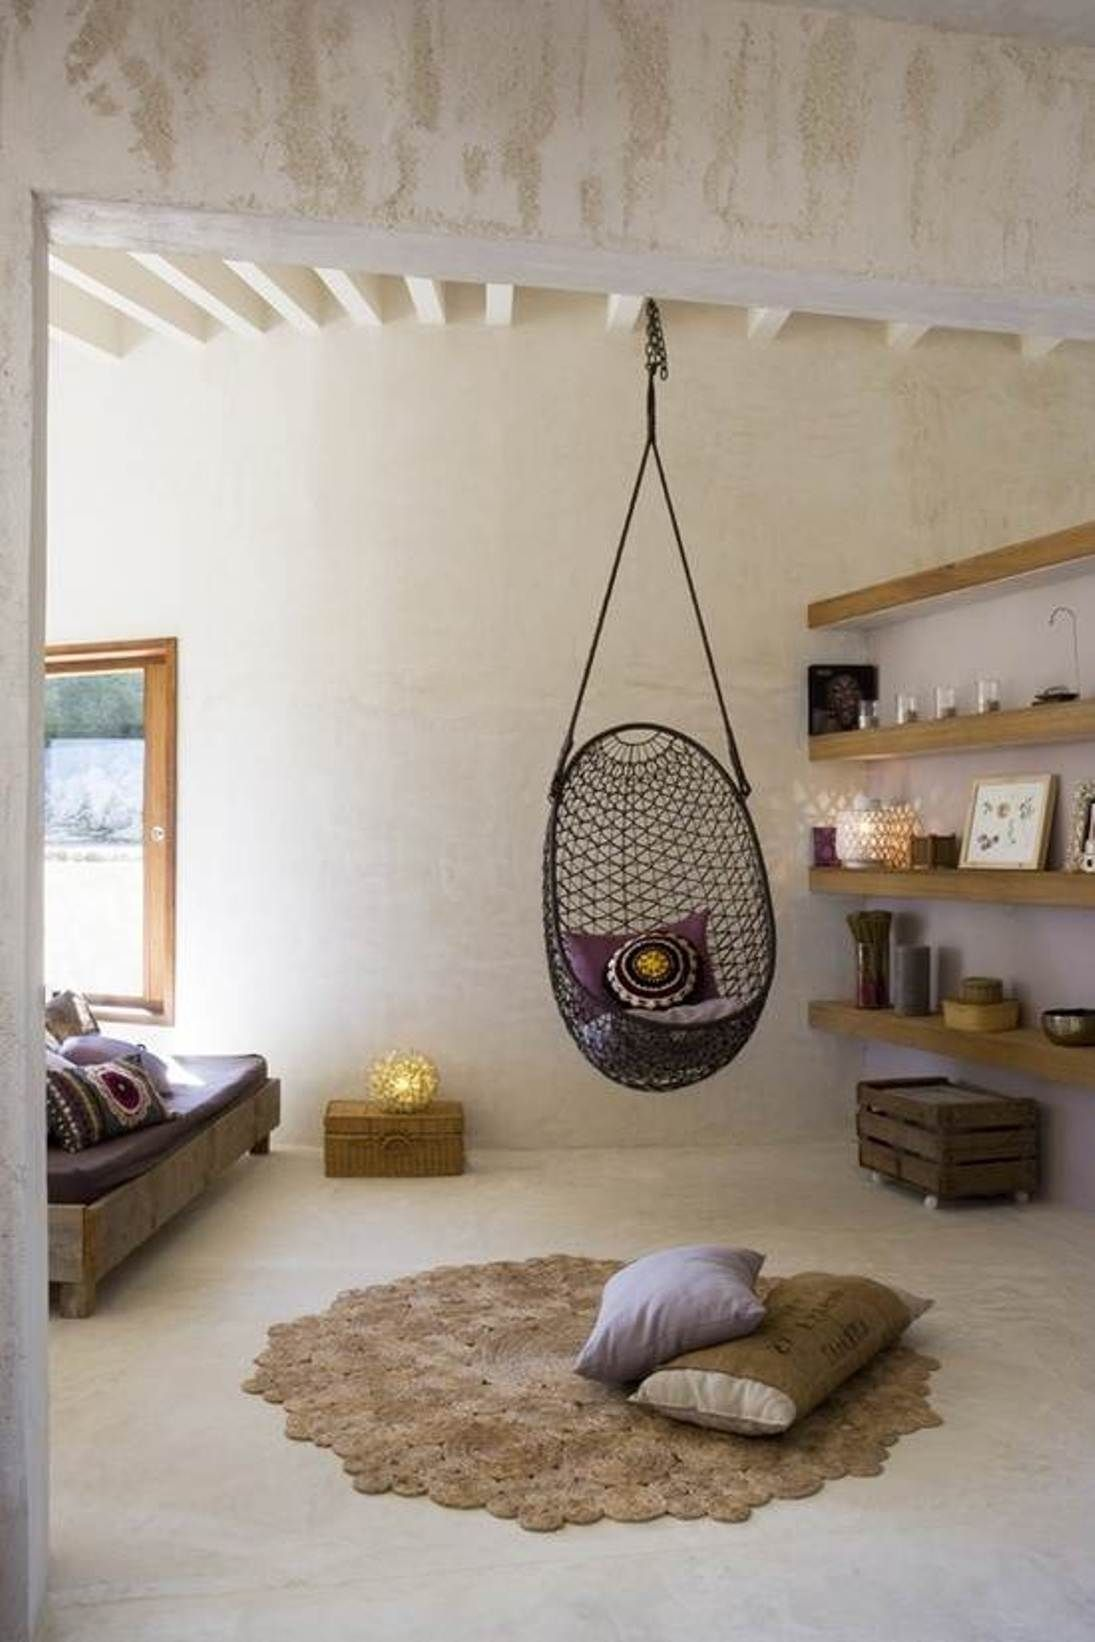 Captivating grid rattan bedroom hanging chair design ...